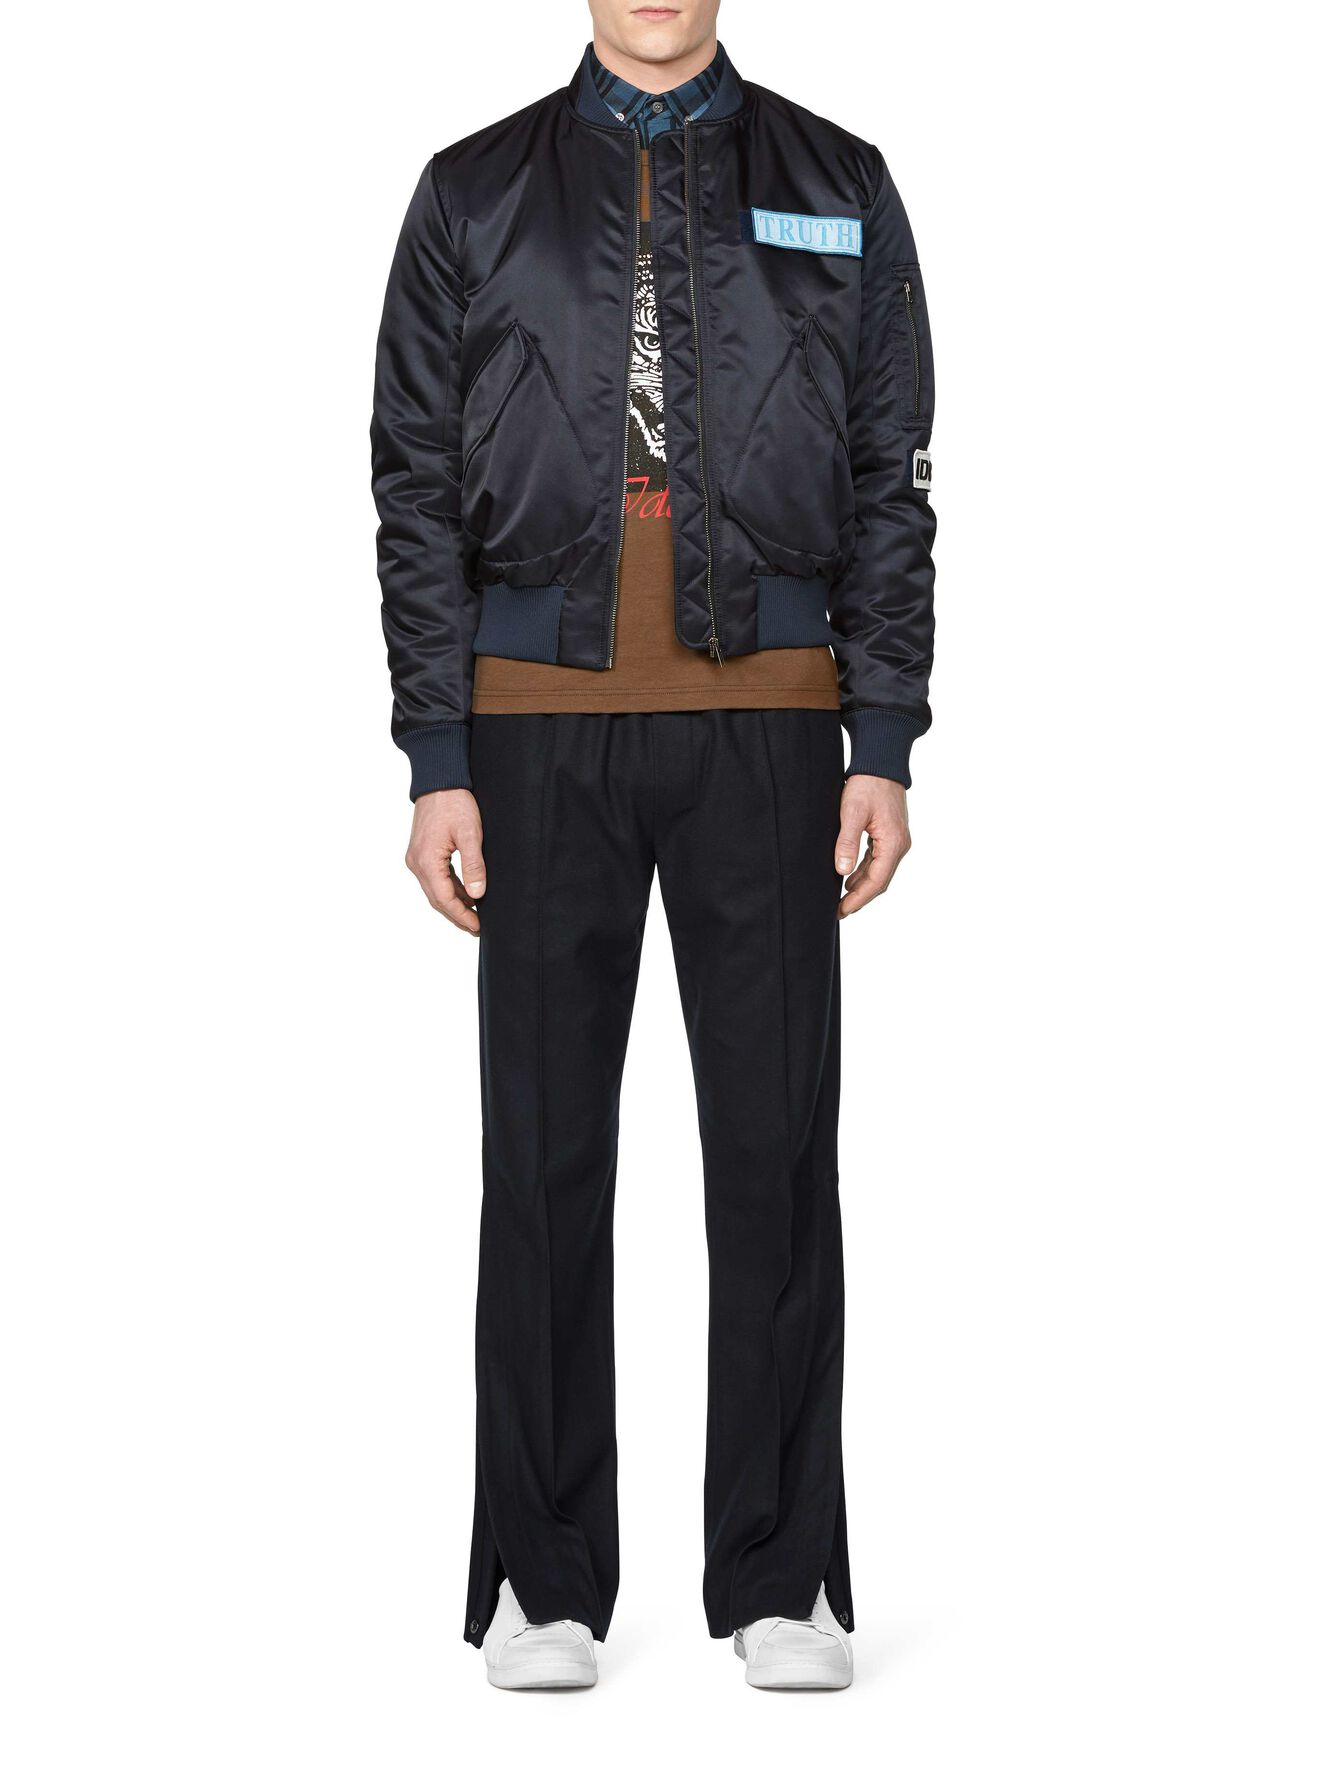 LUNDIN JACKET in Blue function from Tiger of Sweden